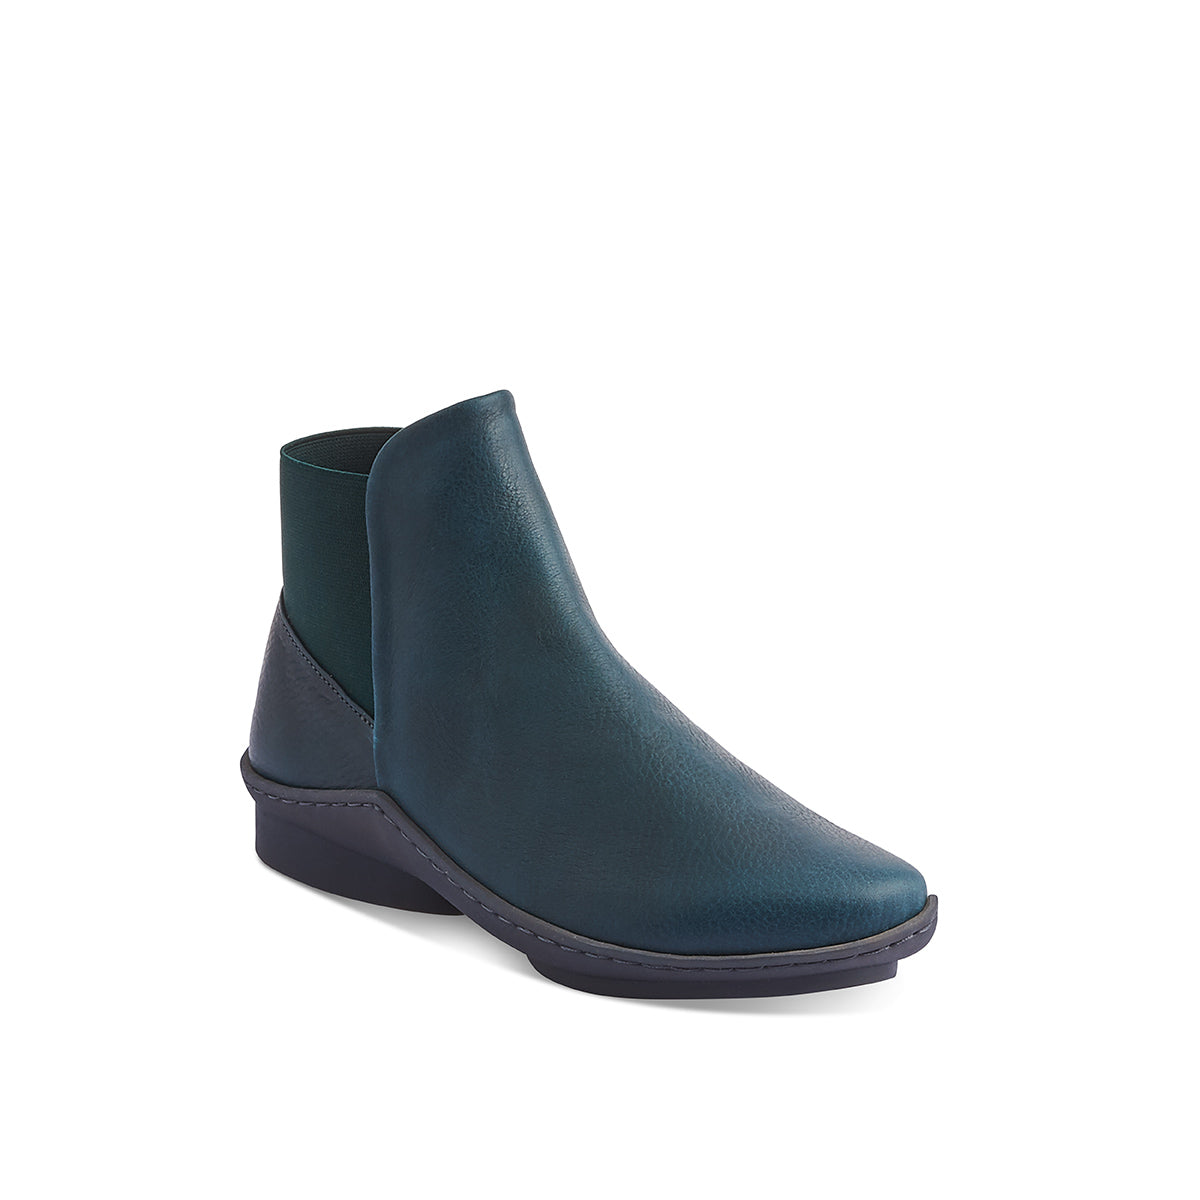 This sporty yet refined ankle boot from Trippen features an elastic section that wraps around the heel for a snug, very comfy fit. The soft leather lining and deep petrol green upper combine for winter readiness and the textured rubber 'wave' sole is complemented internally by a contoured leather footbed providing arch support.